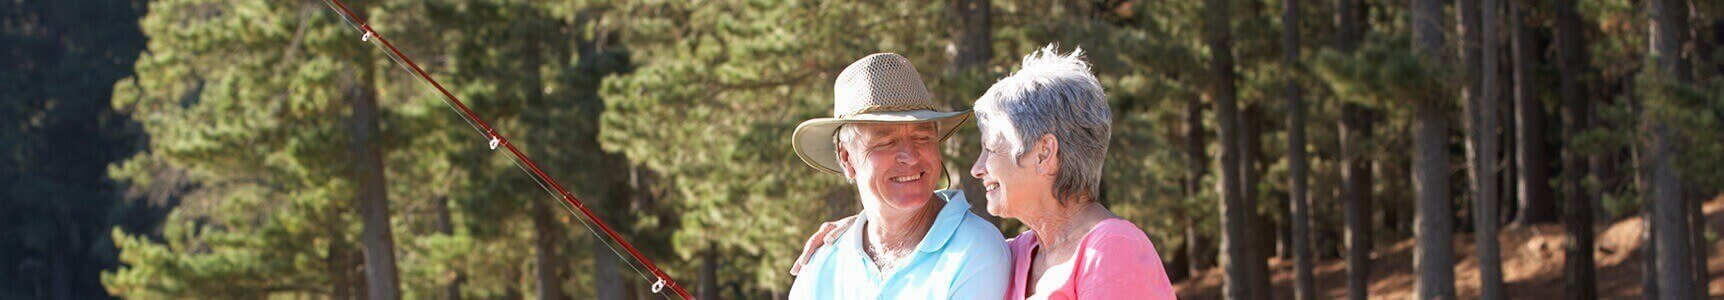 Dental Implants in Coeur d'Alene and Post Falls, ID